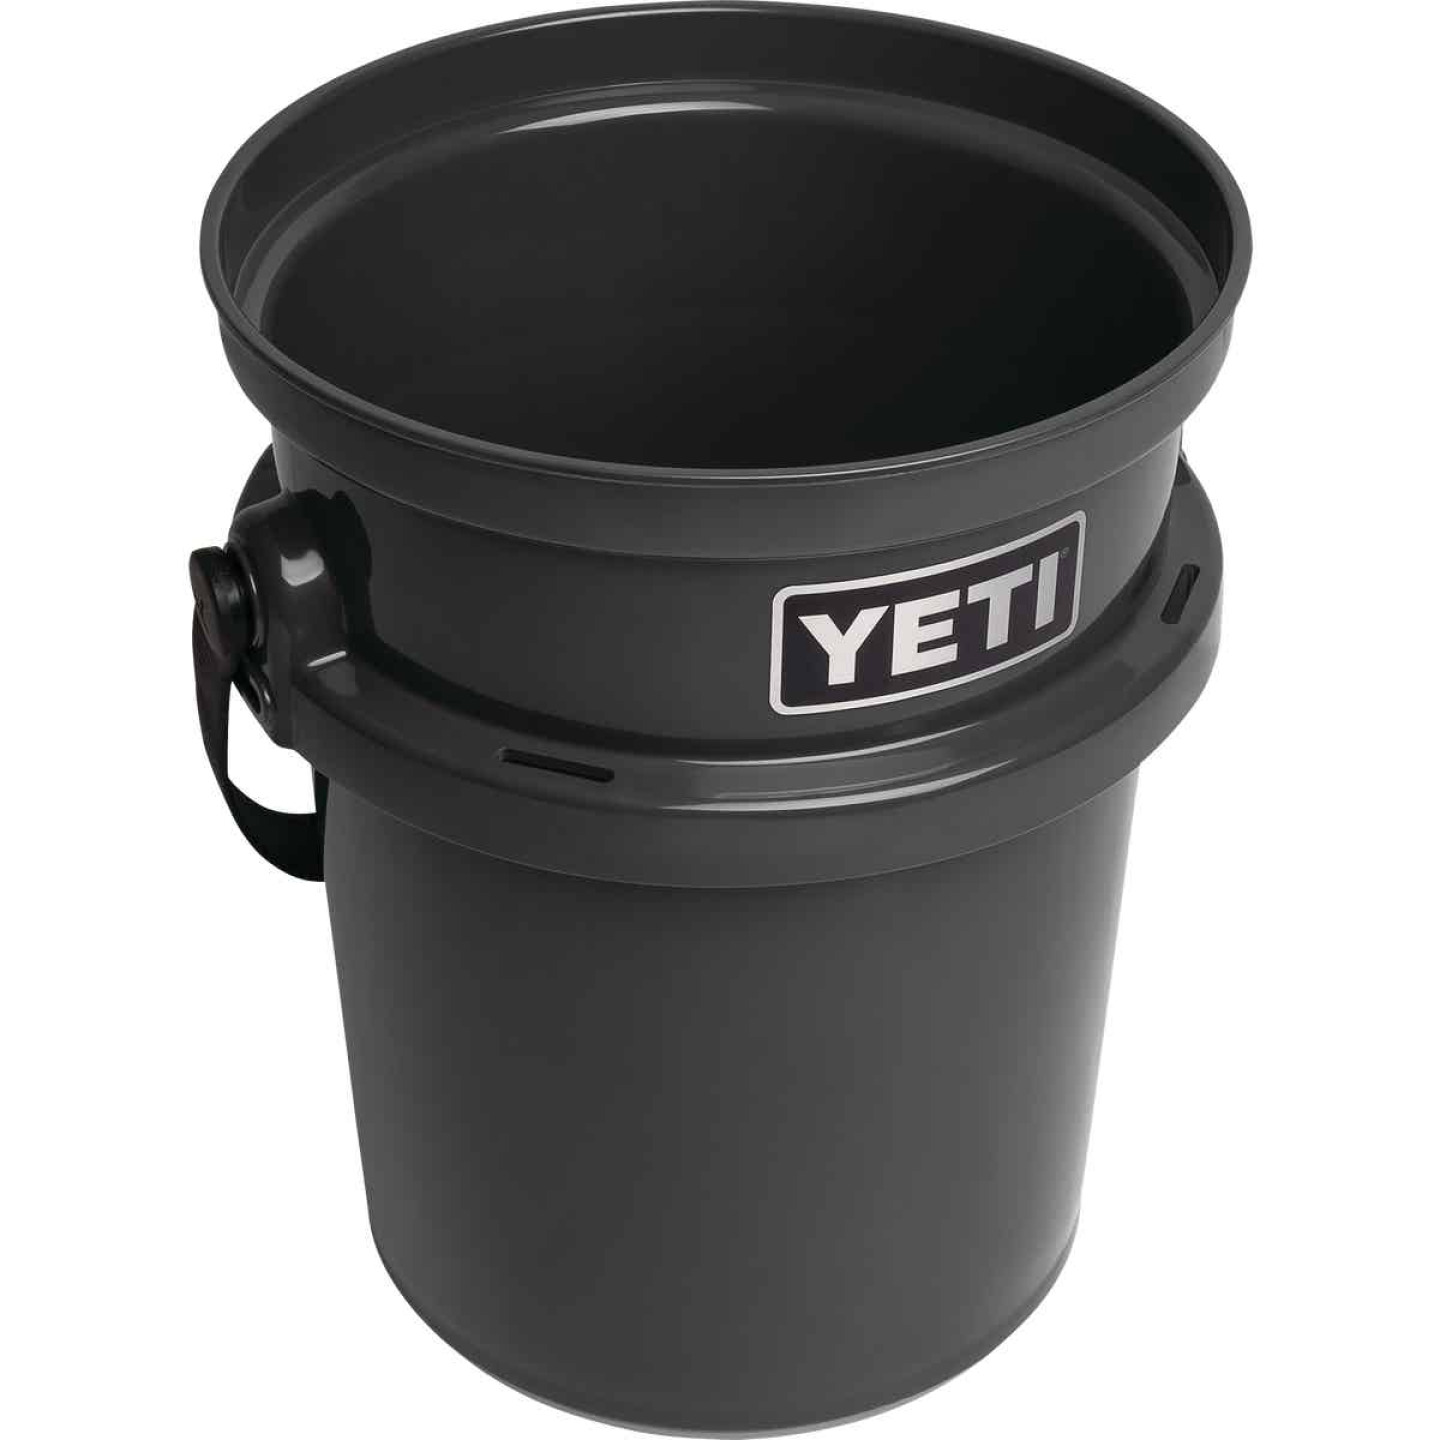 Yeti LoadOut 5 Gal. Charcoal Bucket Image 4